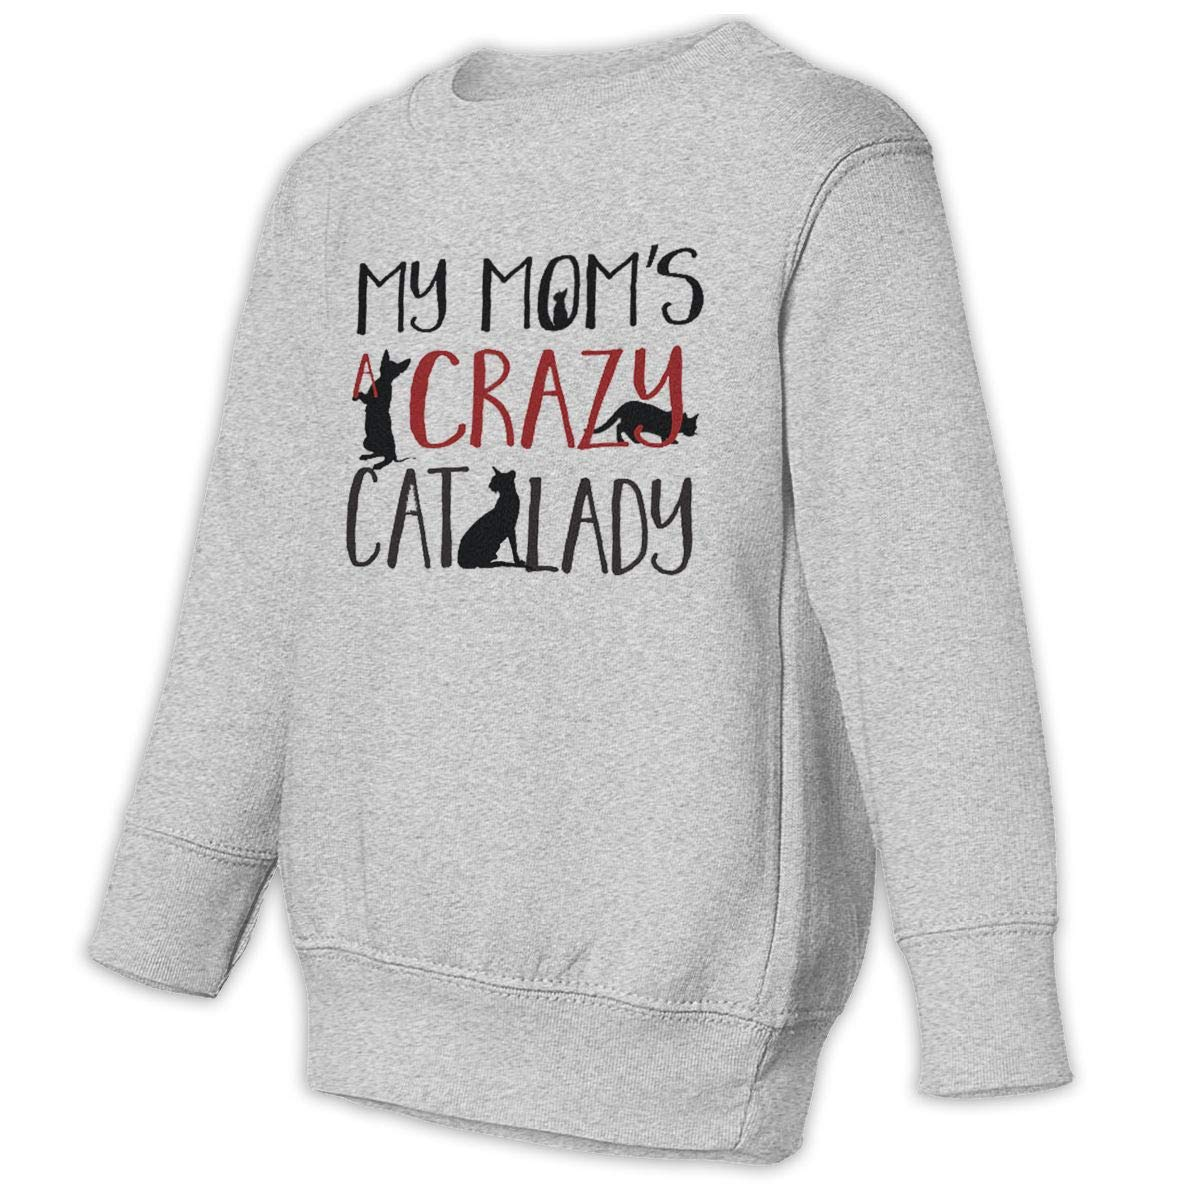 My Moms Crazy Cat Lady Baby Sweatshirt Adorable Juvenile Hoodies Soft Pullovers